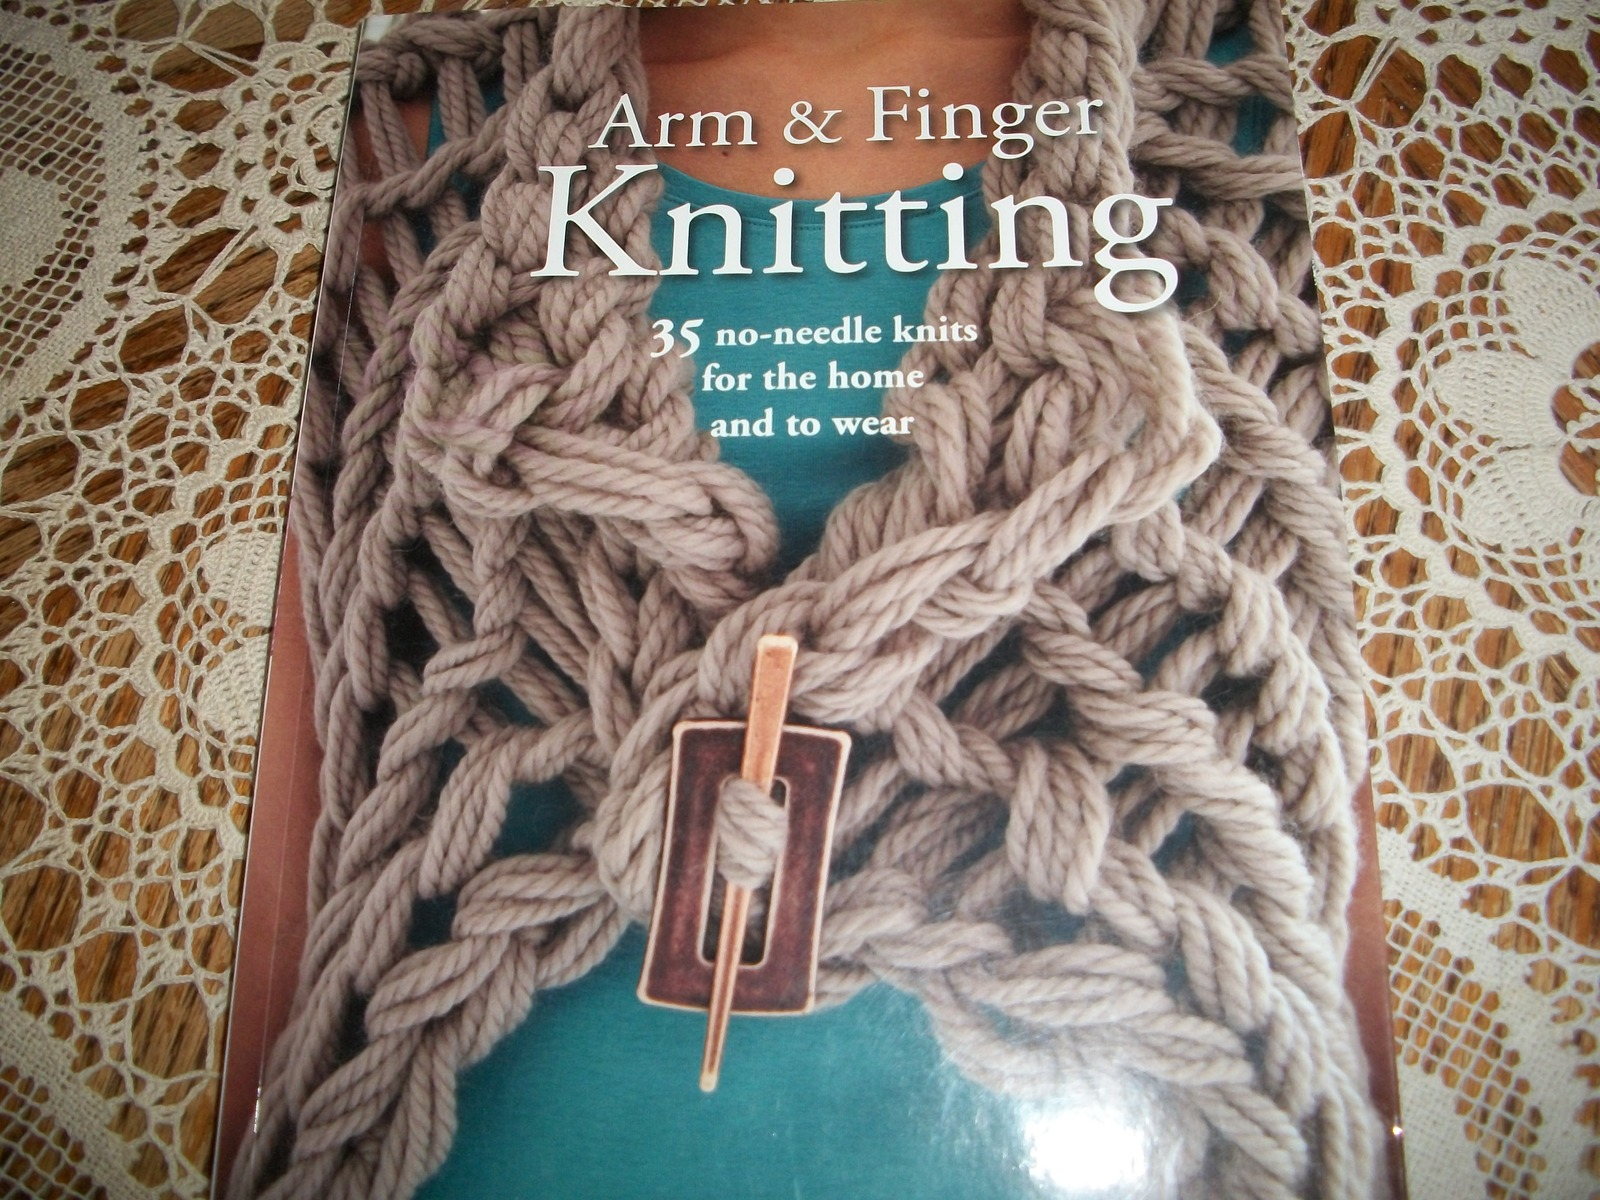 Primary image for Arm & Finger Knitting by Laura Strutt